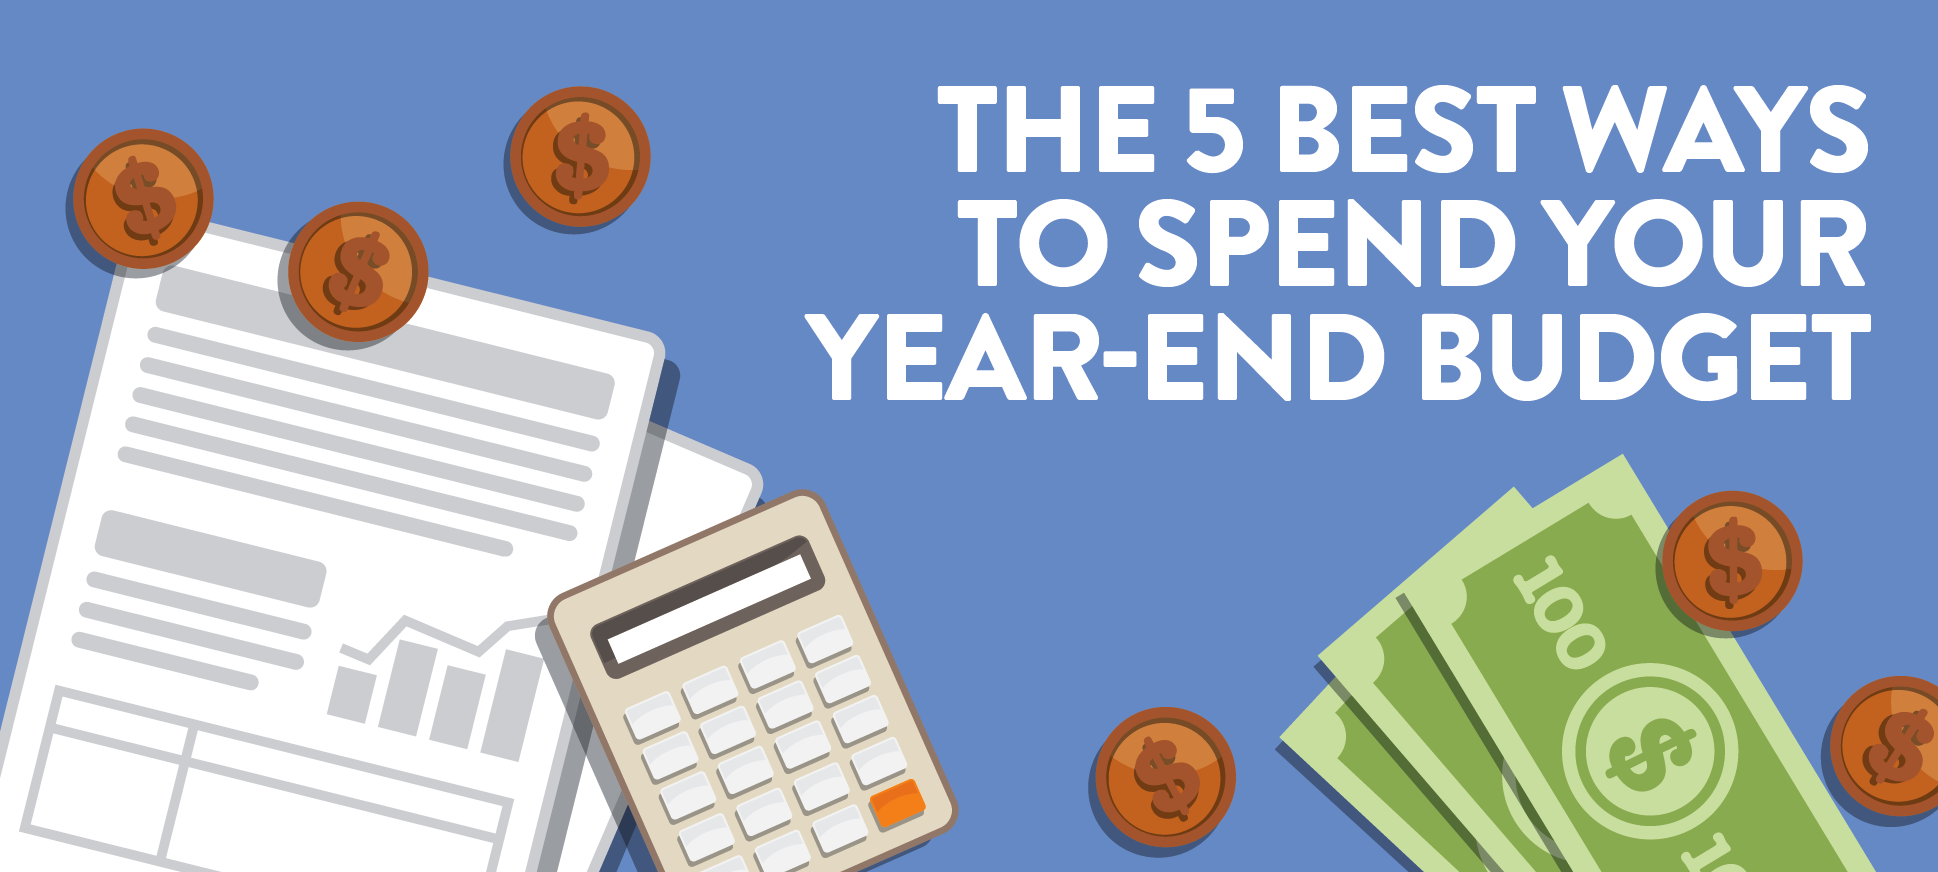 The 5 best ways to spend your year end budget